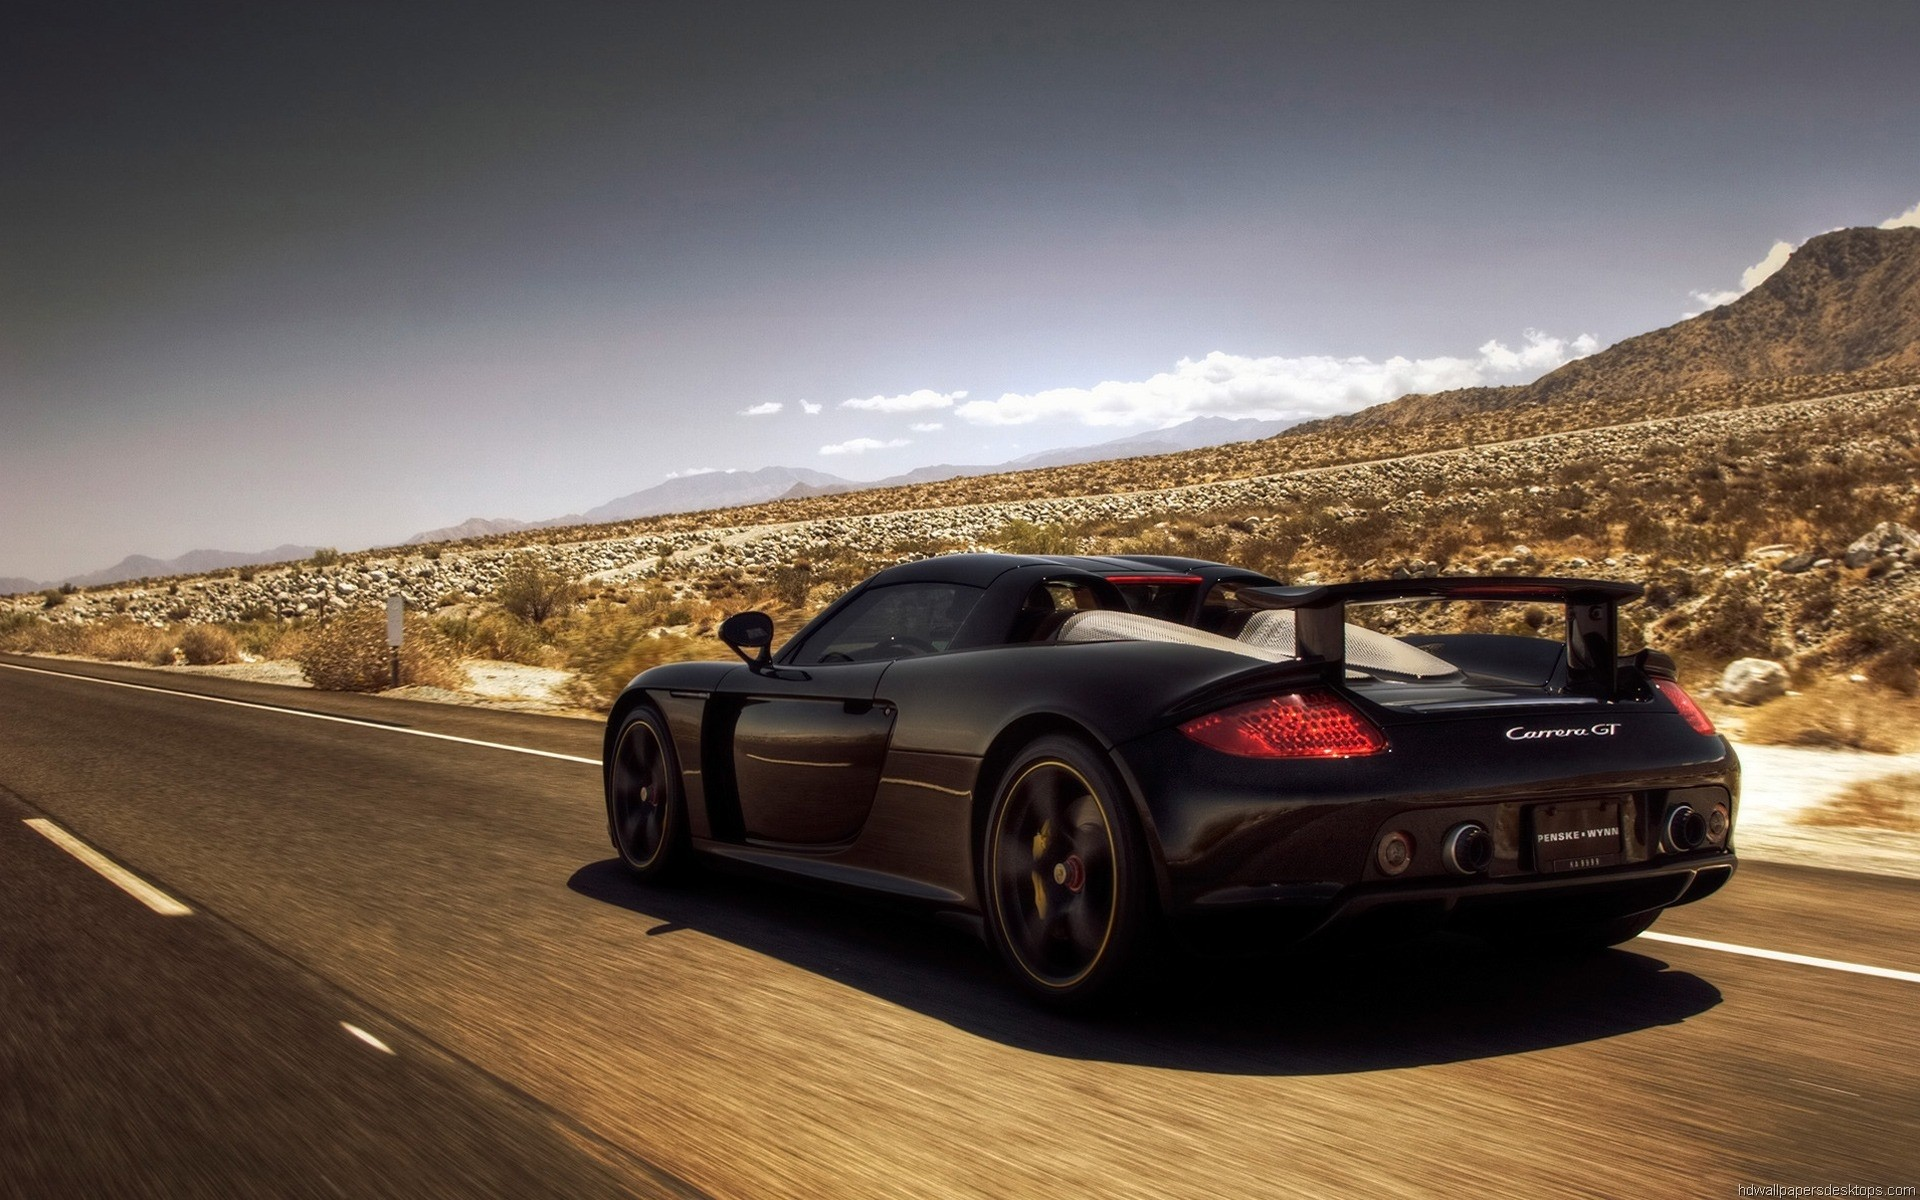 Porsche Hd Wallpapers 1080p: Full HD Sports Car Wallpaper (61+ Images